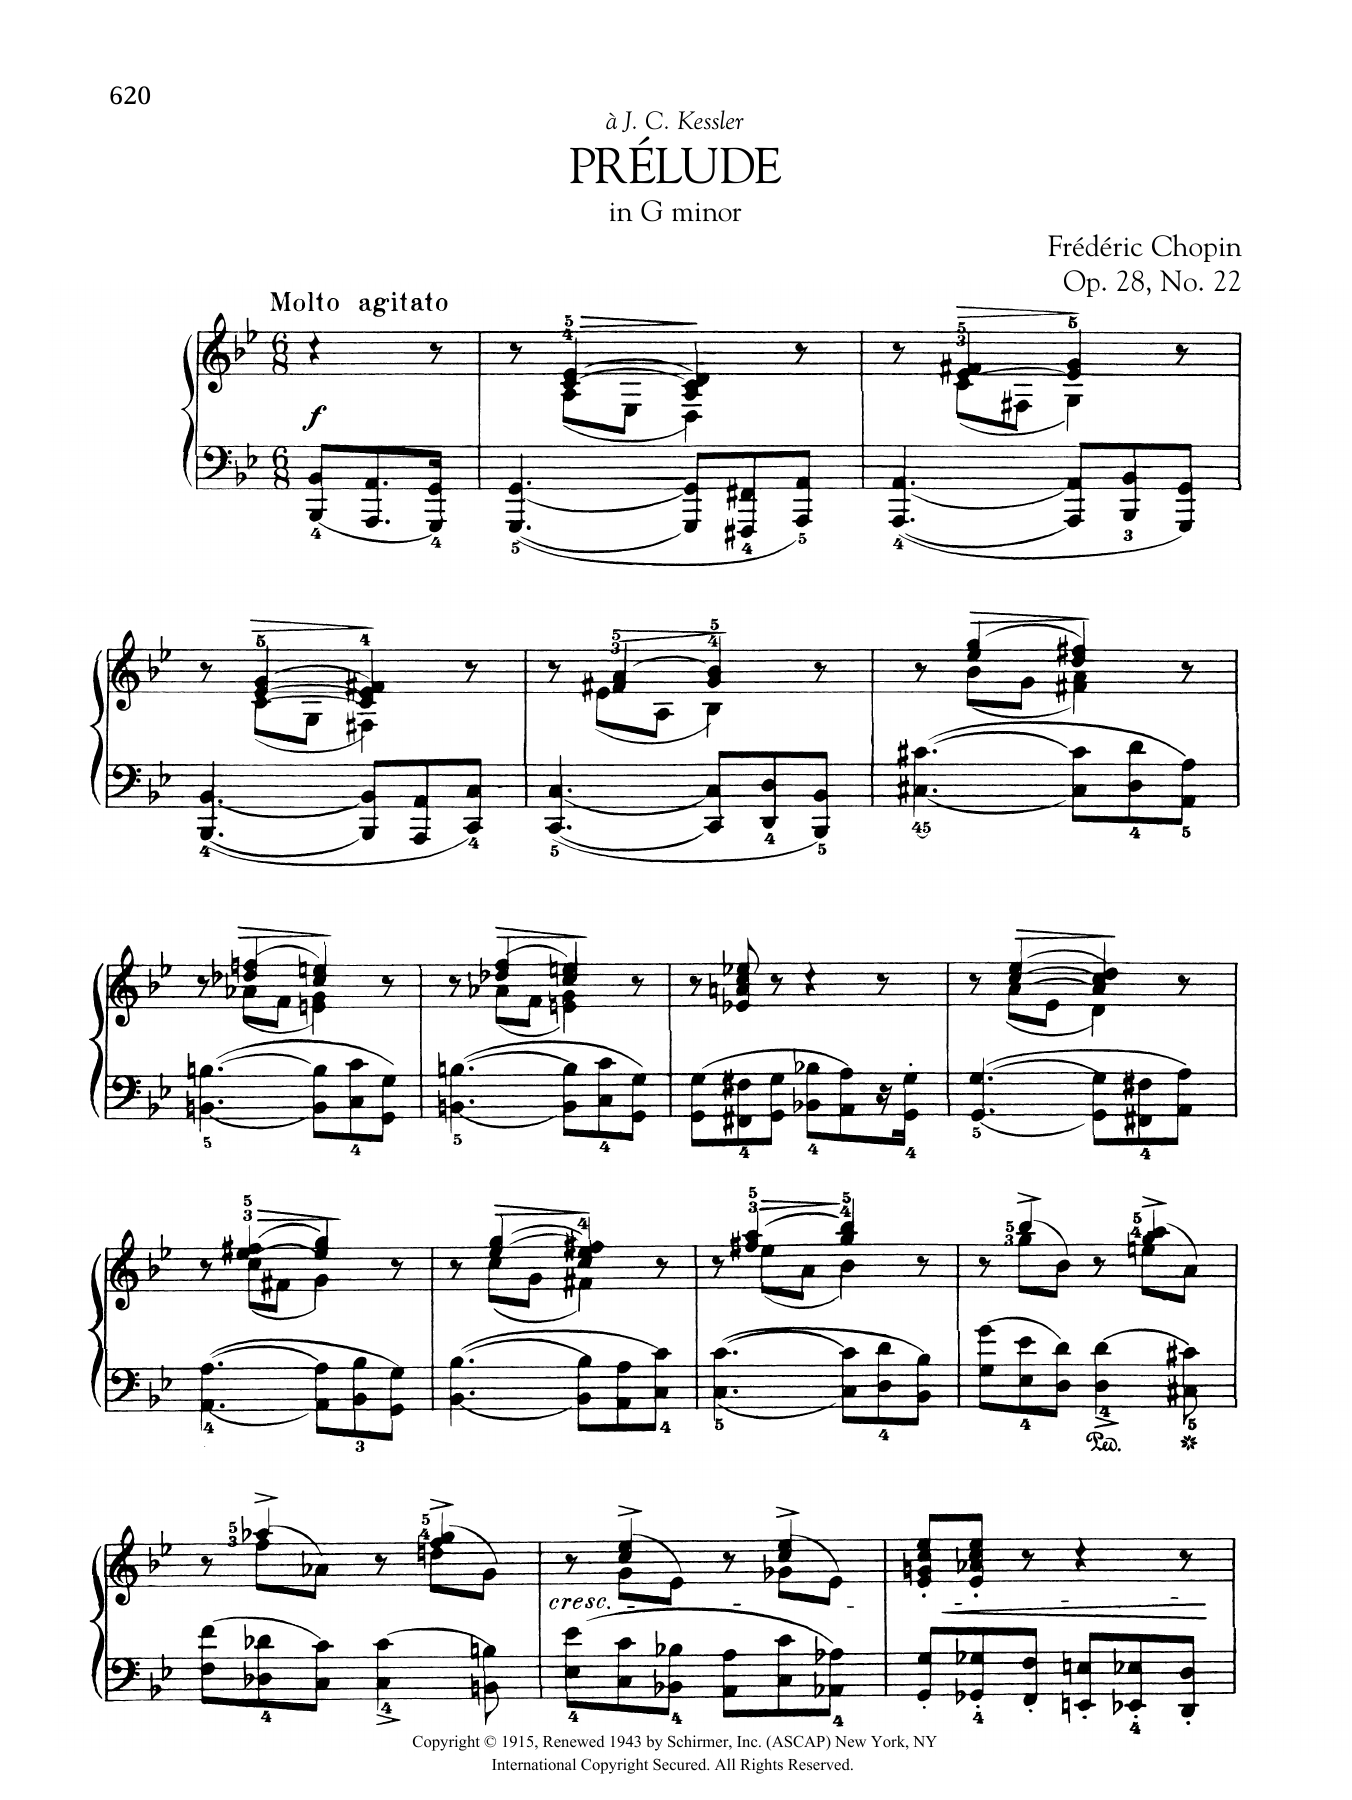 Prélude in G minor, Op. 28, No. 22 Sheet Music